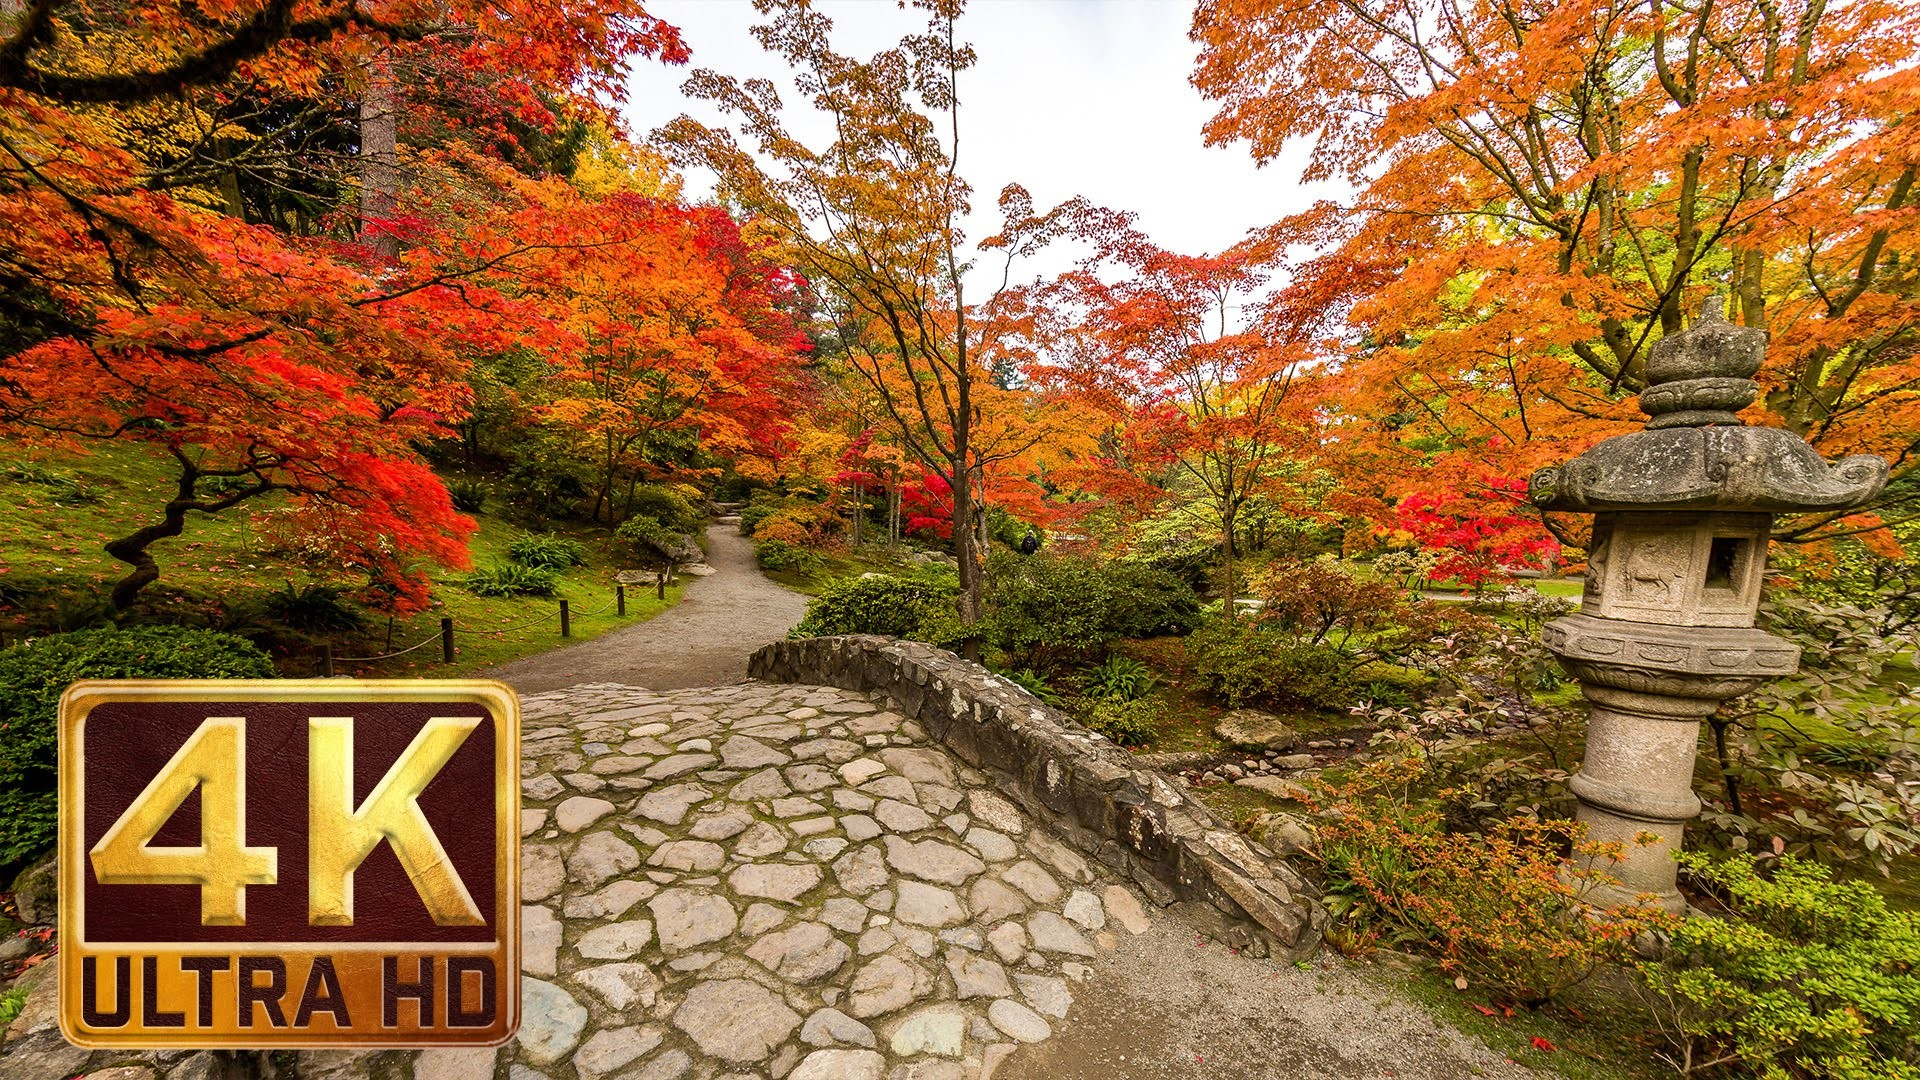 1920x1080 Japanese Garden 4K resolution - 1 hour - Nature Sound for Relaxation -  Autumn - YouTube